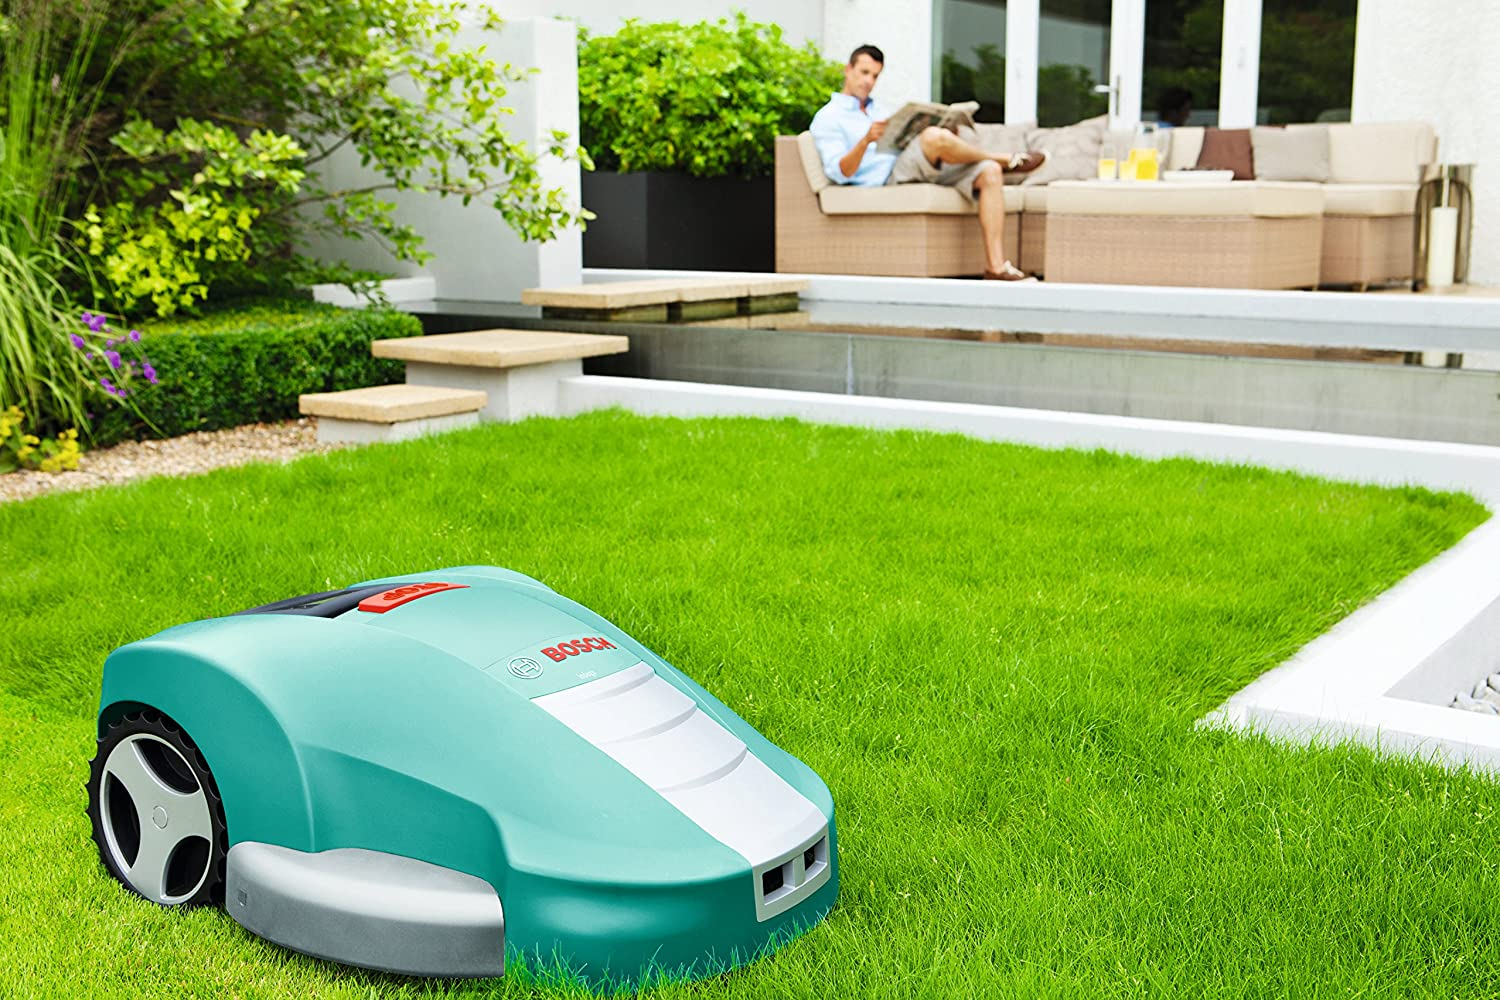 Bosch Home and Garden 0.600.8A2.100 Bosch Robot Cortacésped INDEGO ...